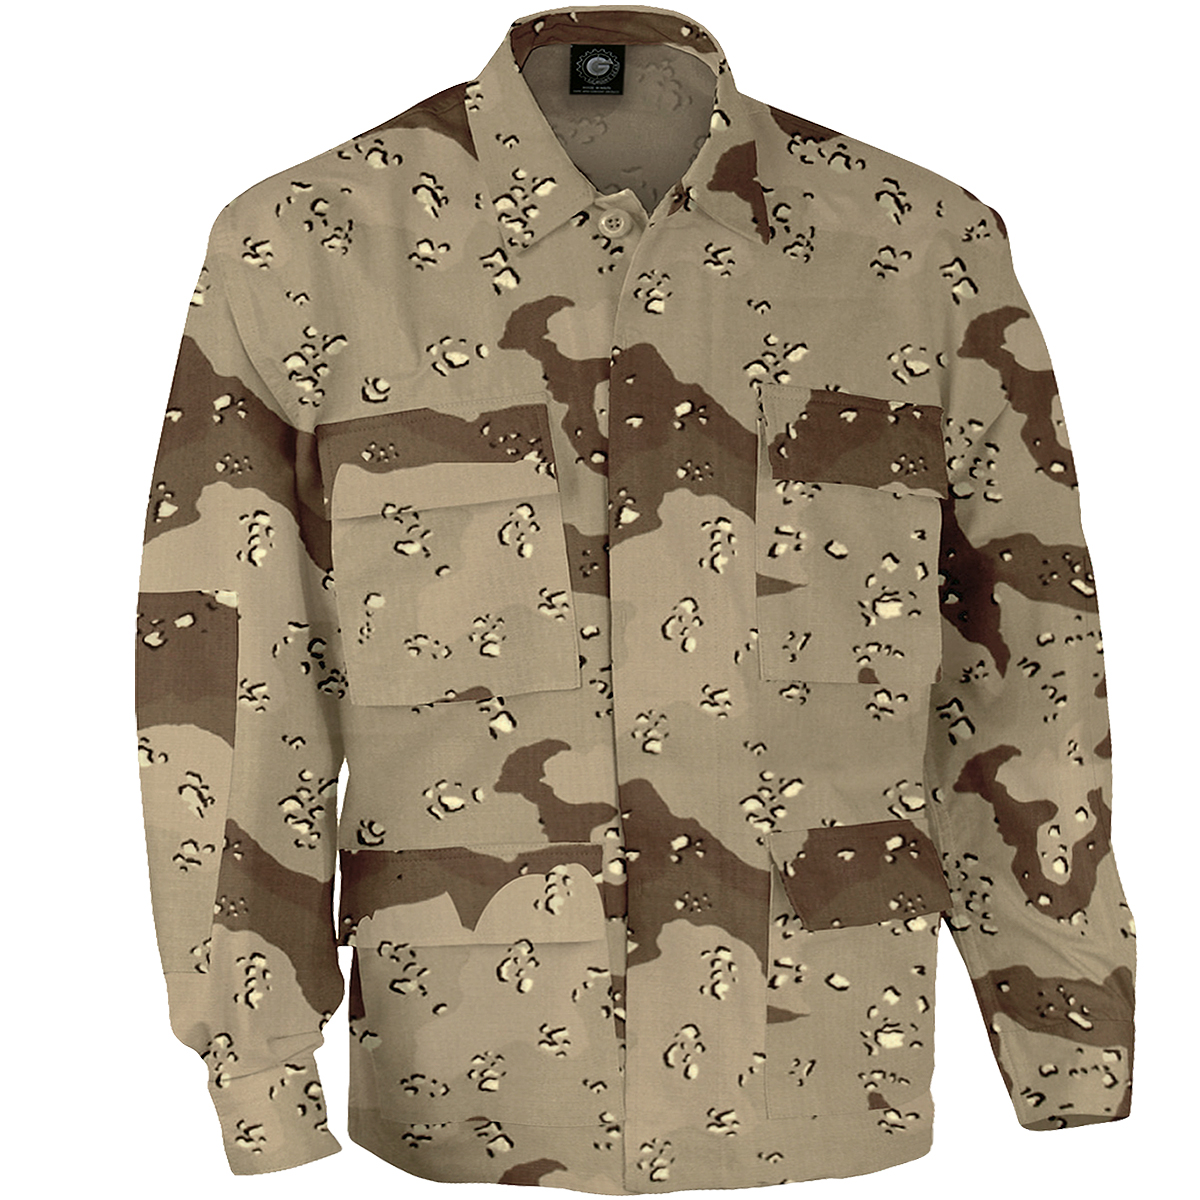 Propper Uniform BDU Coat Polycotton Ripstop 6-Colour Desert Propper Uniform  BDU Coat Polycotton Ripstop 6-Colour Desert